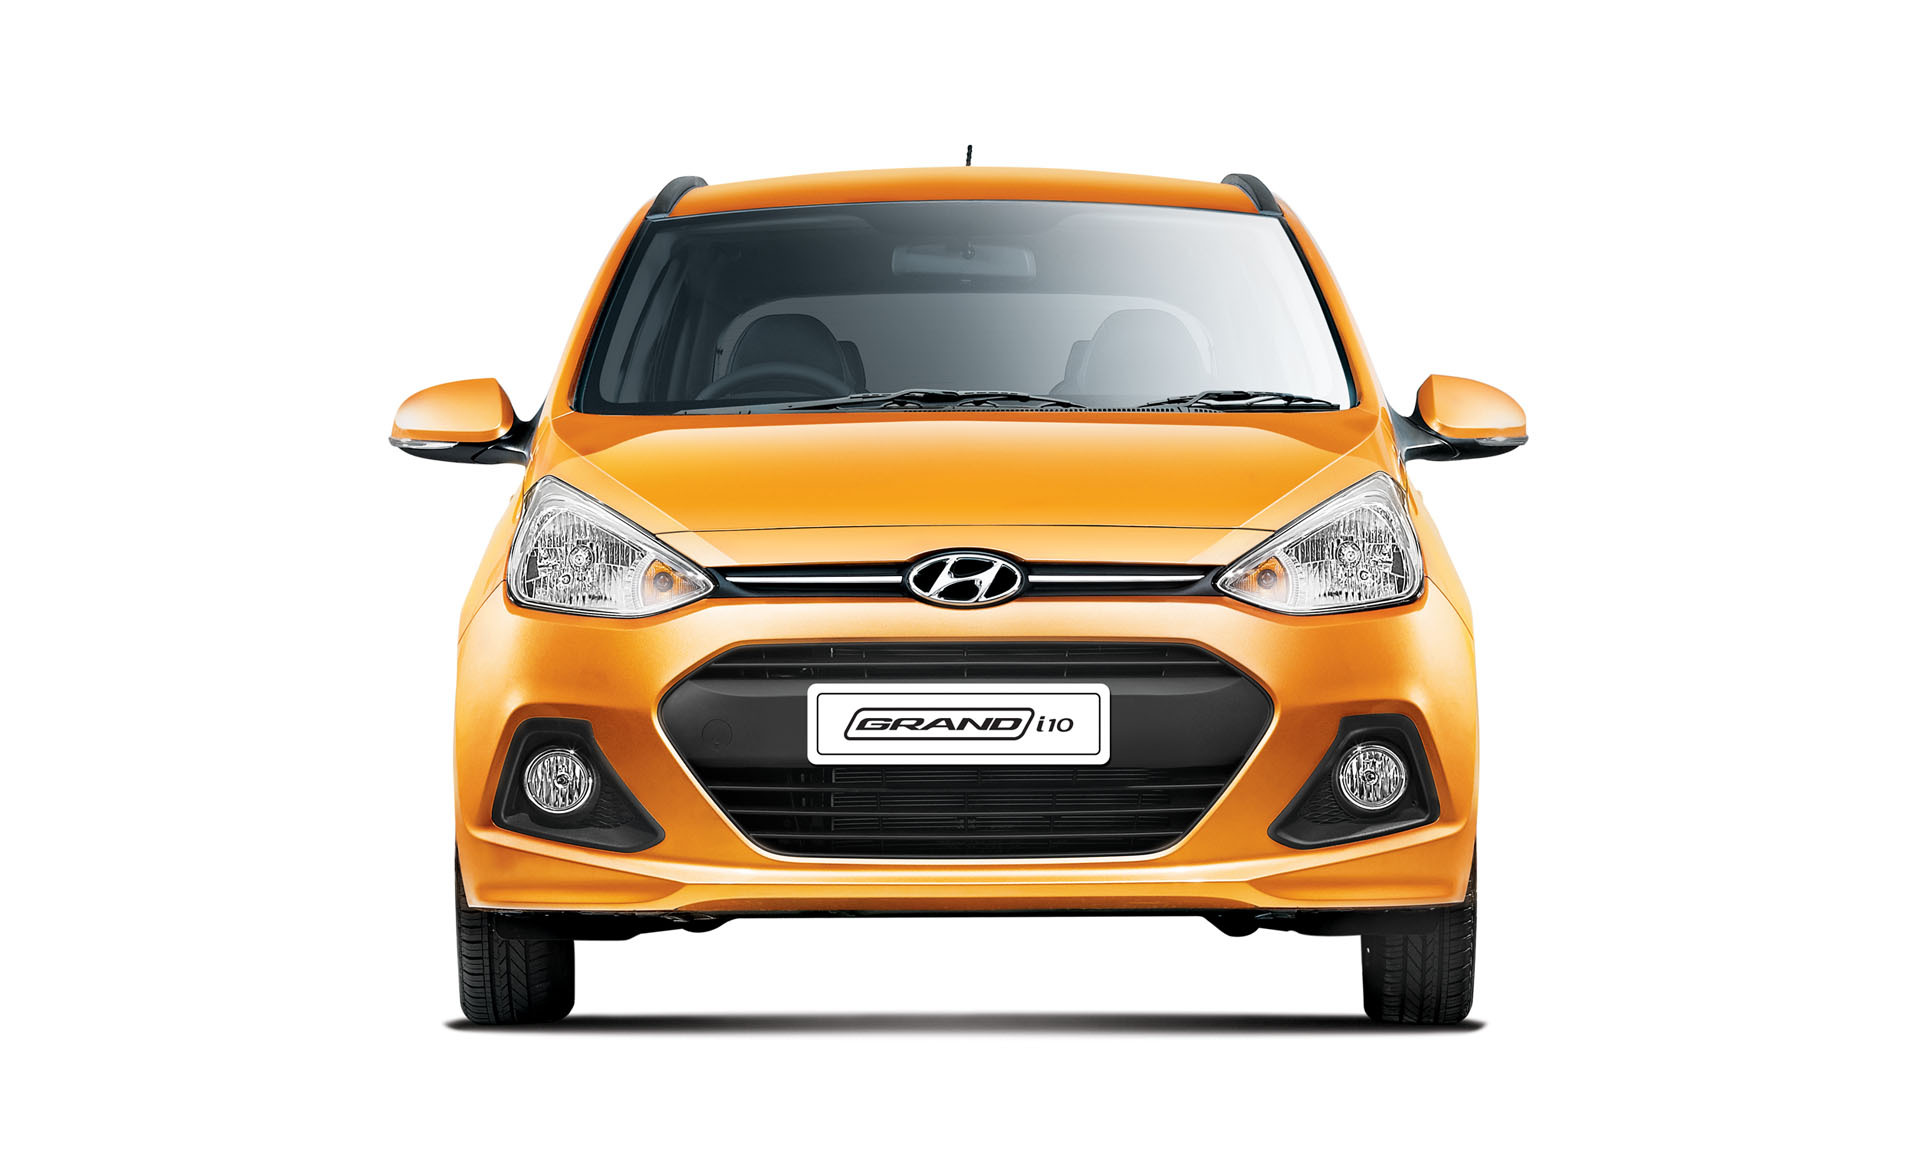 Hyundai Grand i10 Automatic Exteriors Front View